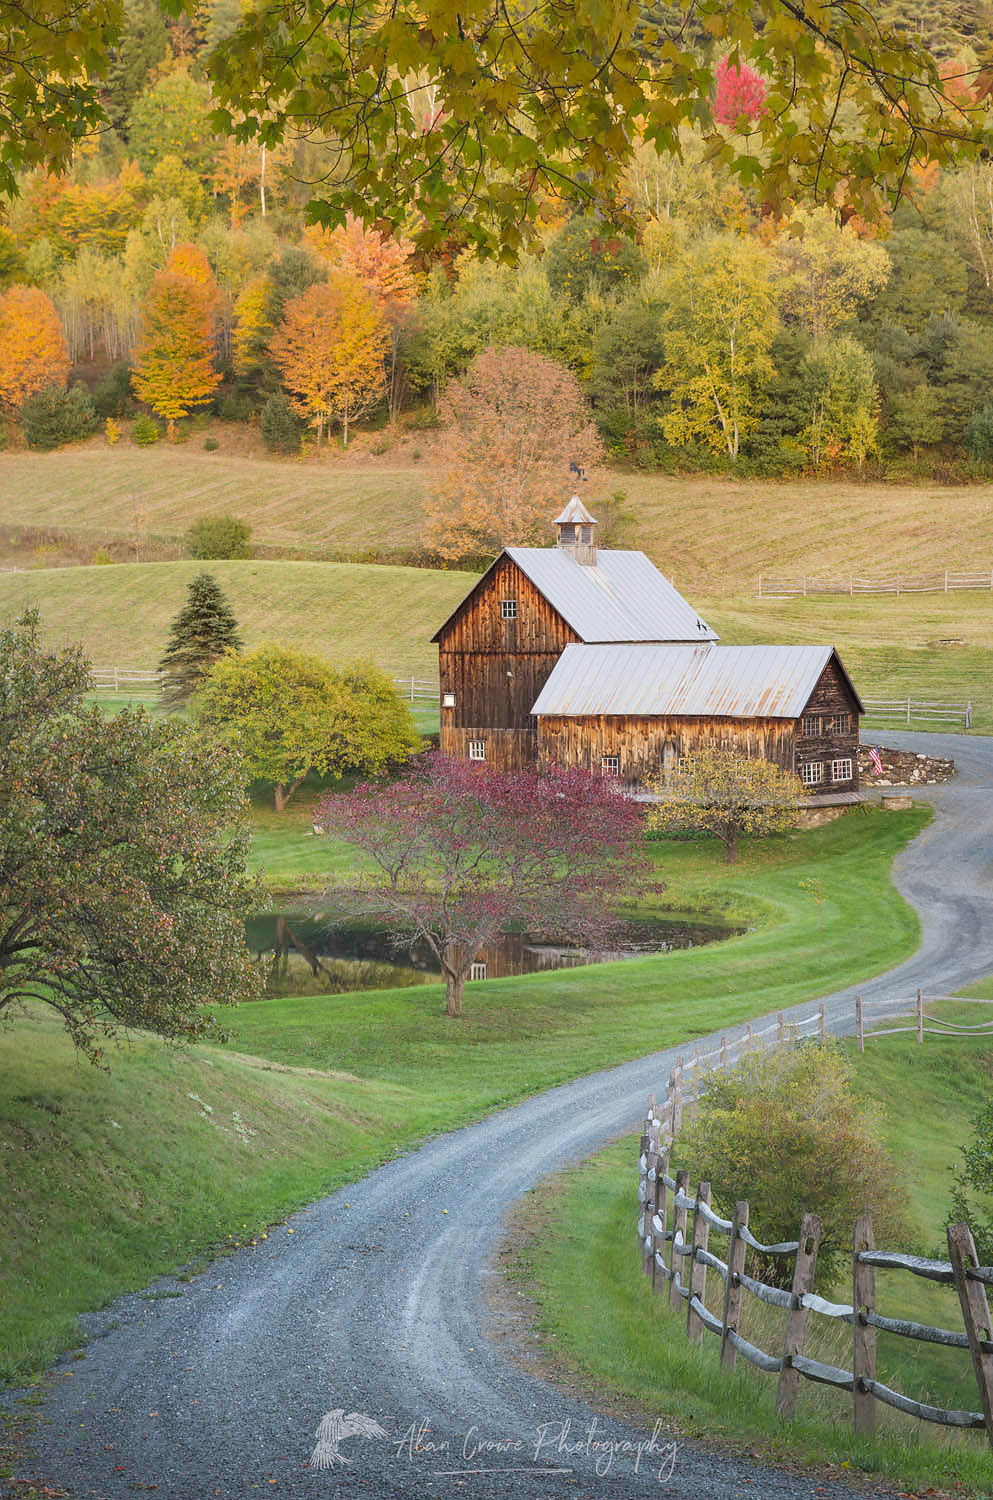 Sleepy Hollow Farm, Woodstock Vermont